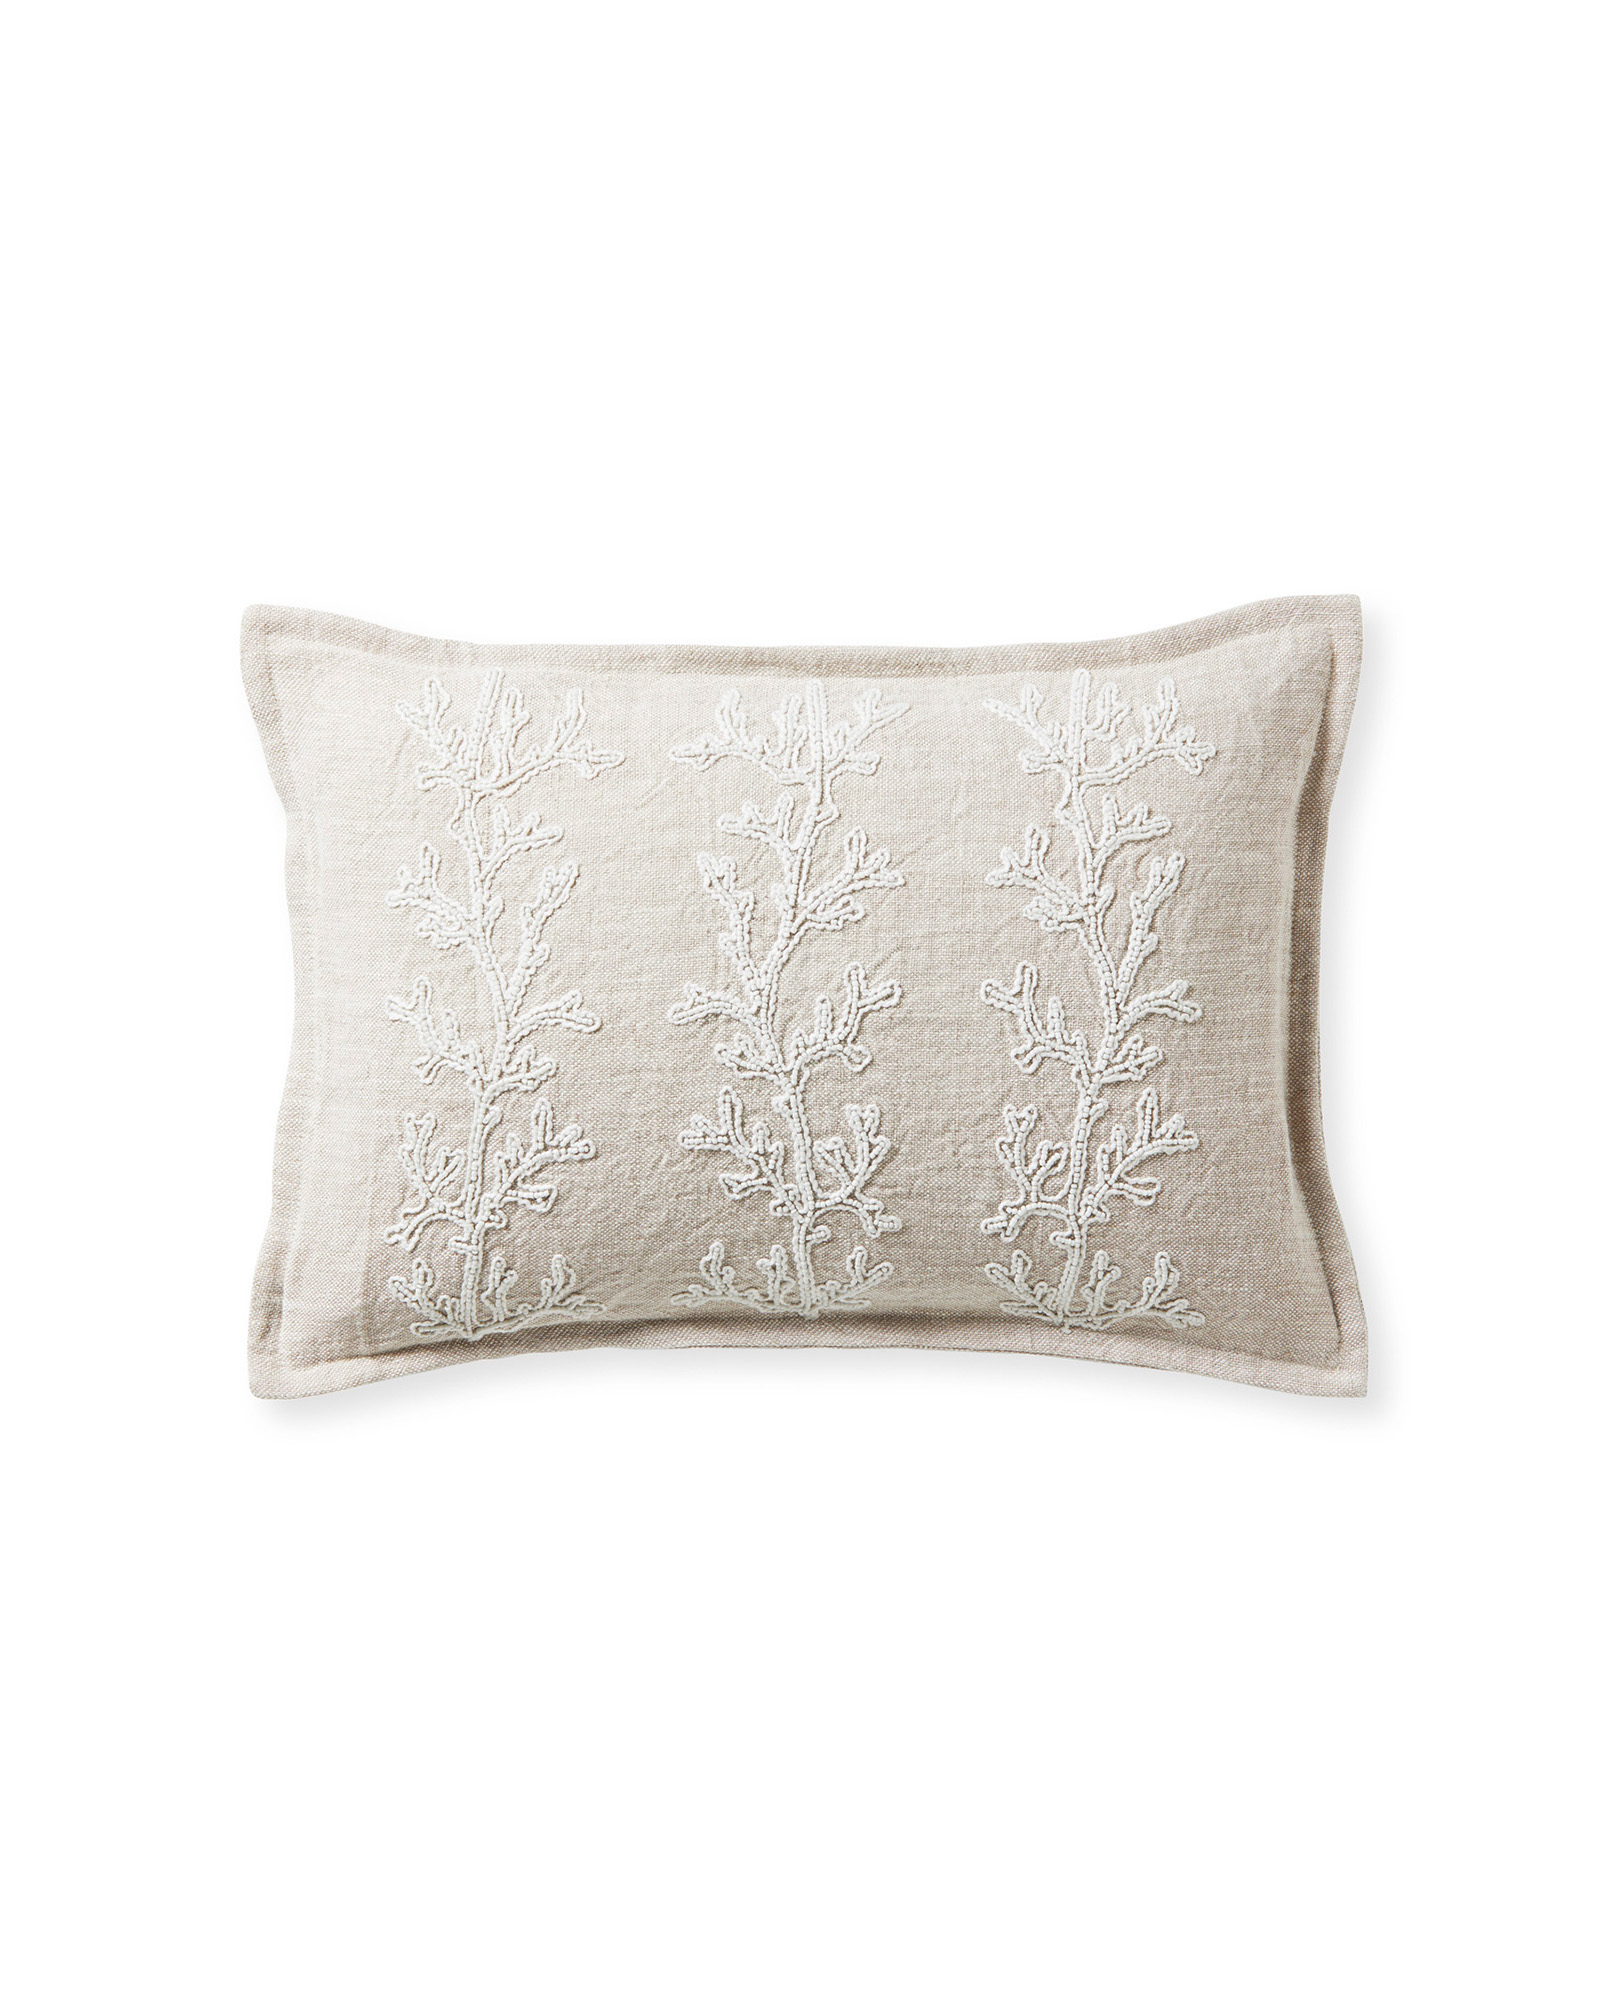 Beach Bay Pillow Cover, Sand